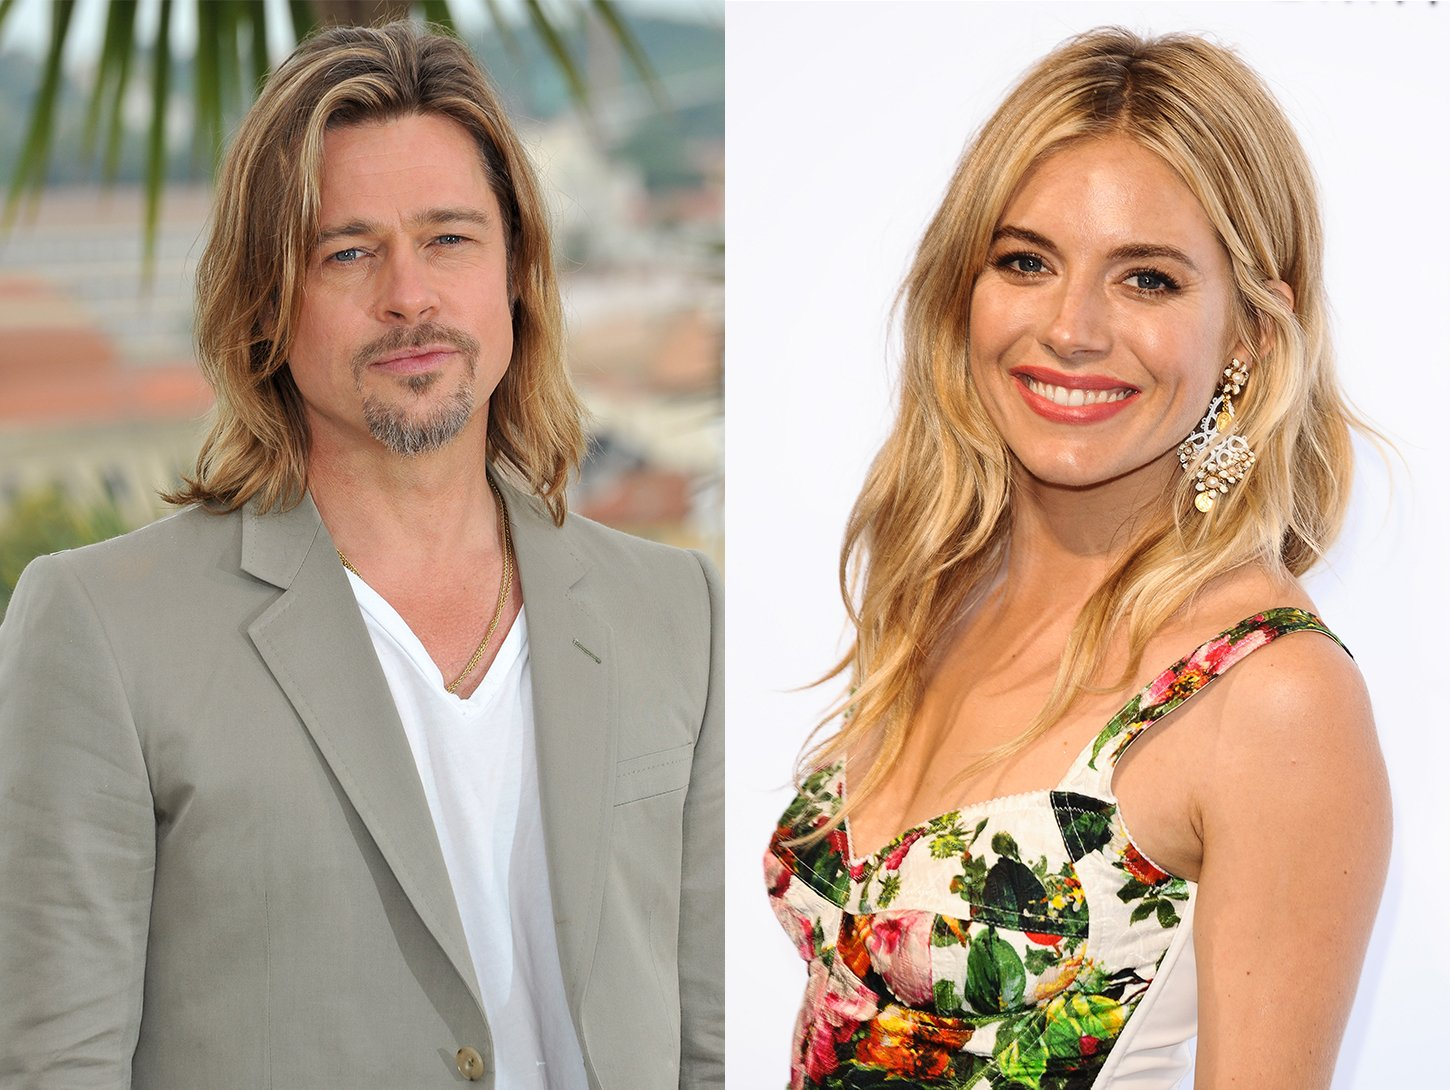 Brad Pitt and Sienna Miller are in a Secret Relationship